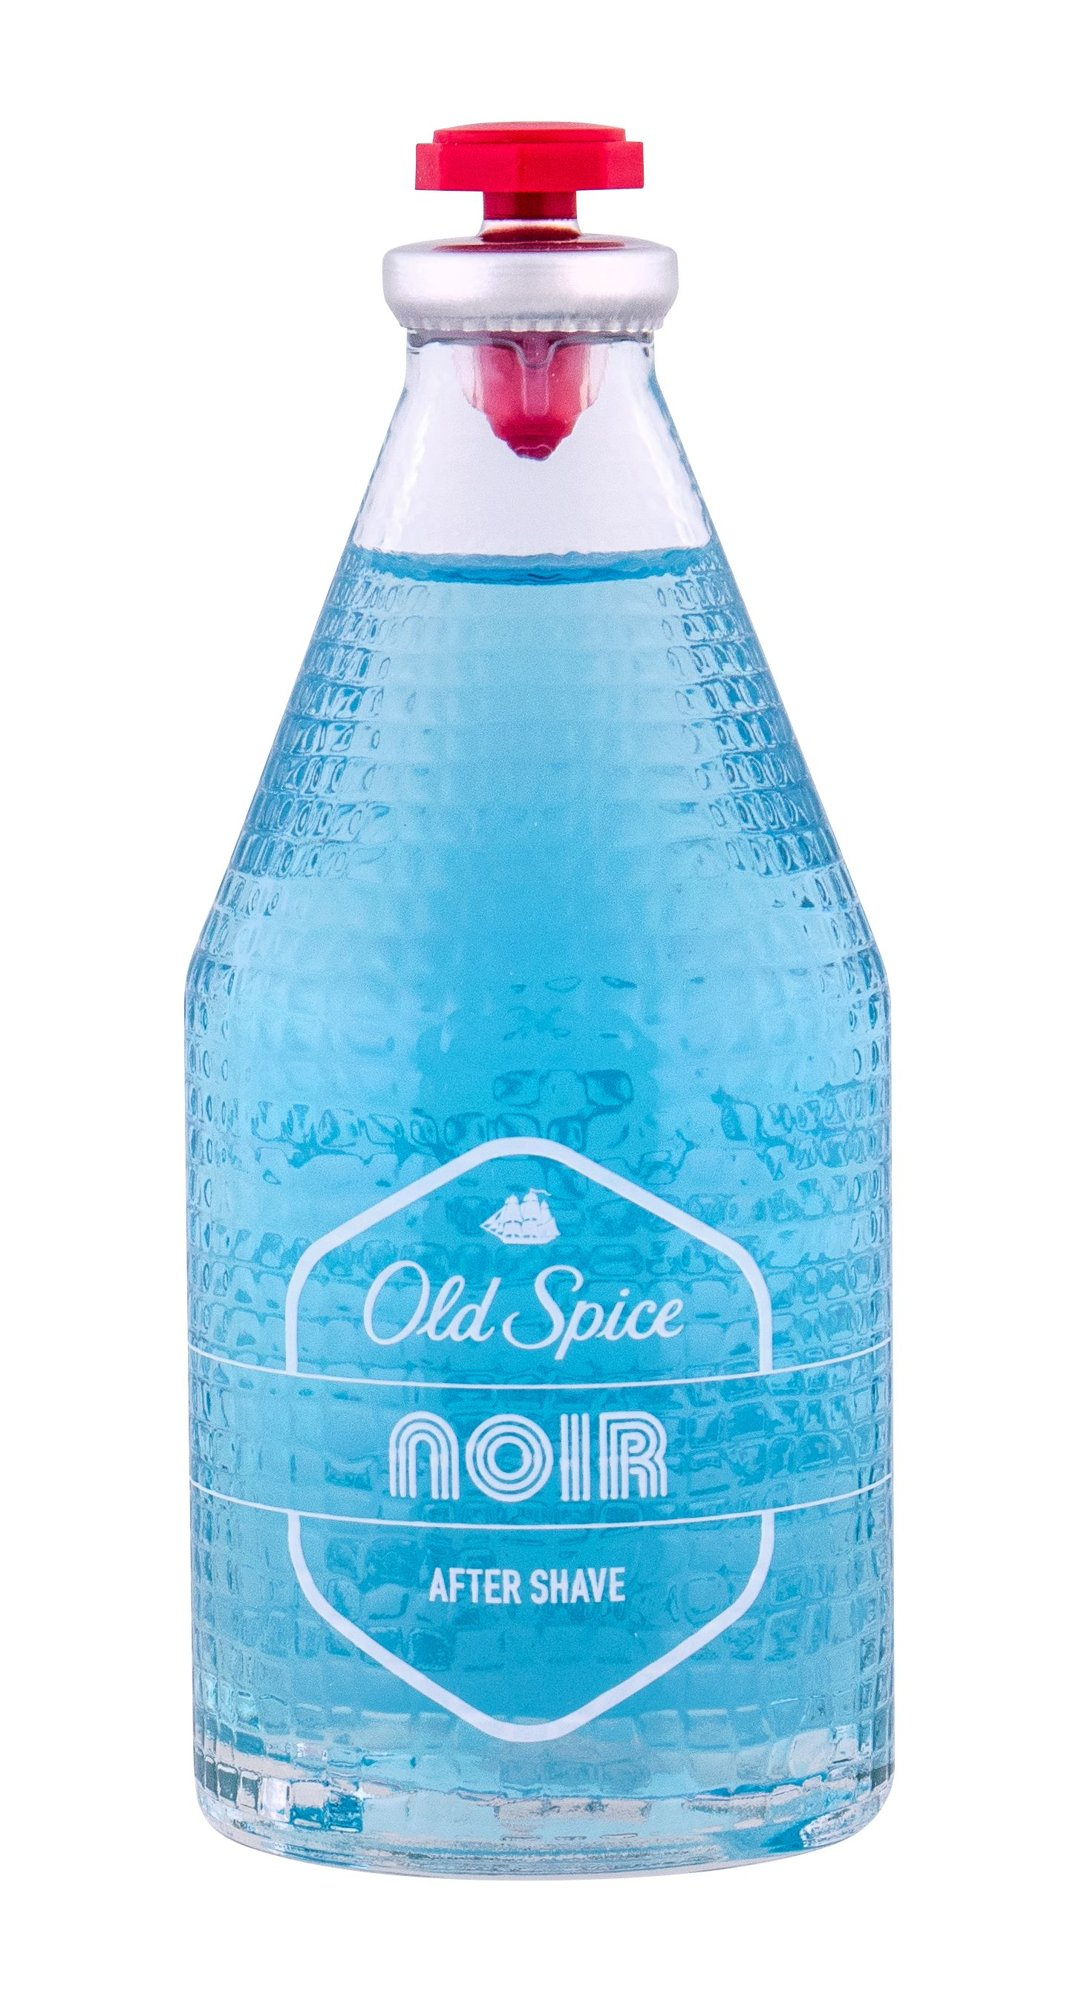 Old Spice Noir Aftershave Water 100ml